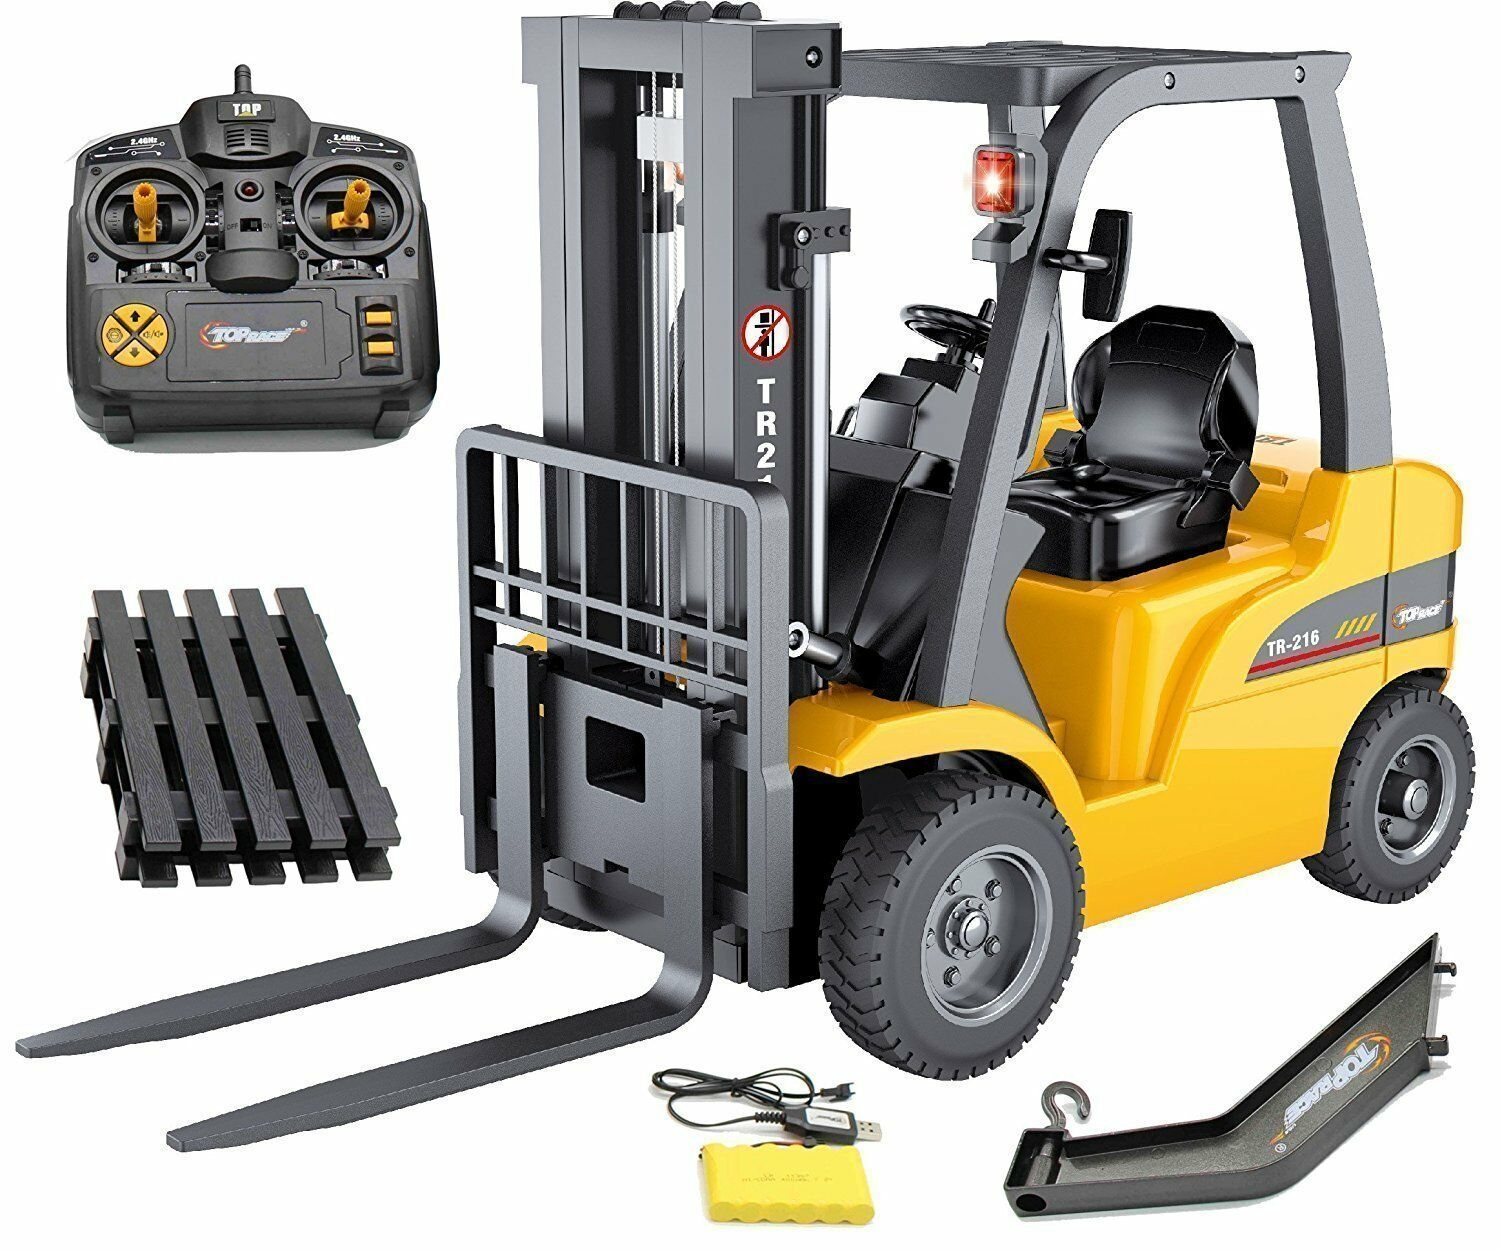 Top Race JUMBO Remote Remote Remote control forklift 13 Inch Tall, 8 Channel Full... bb3b01